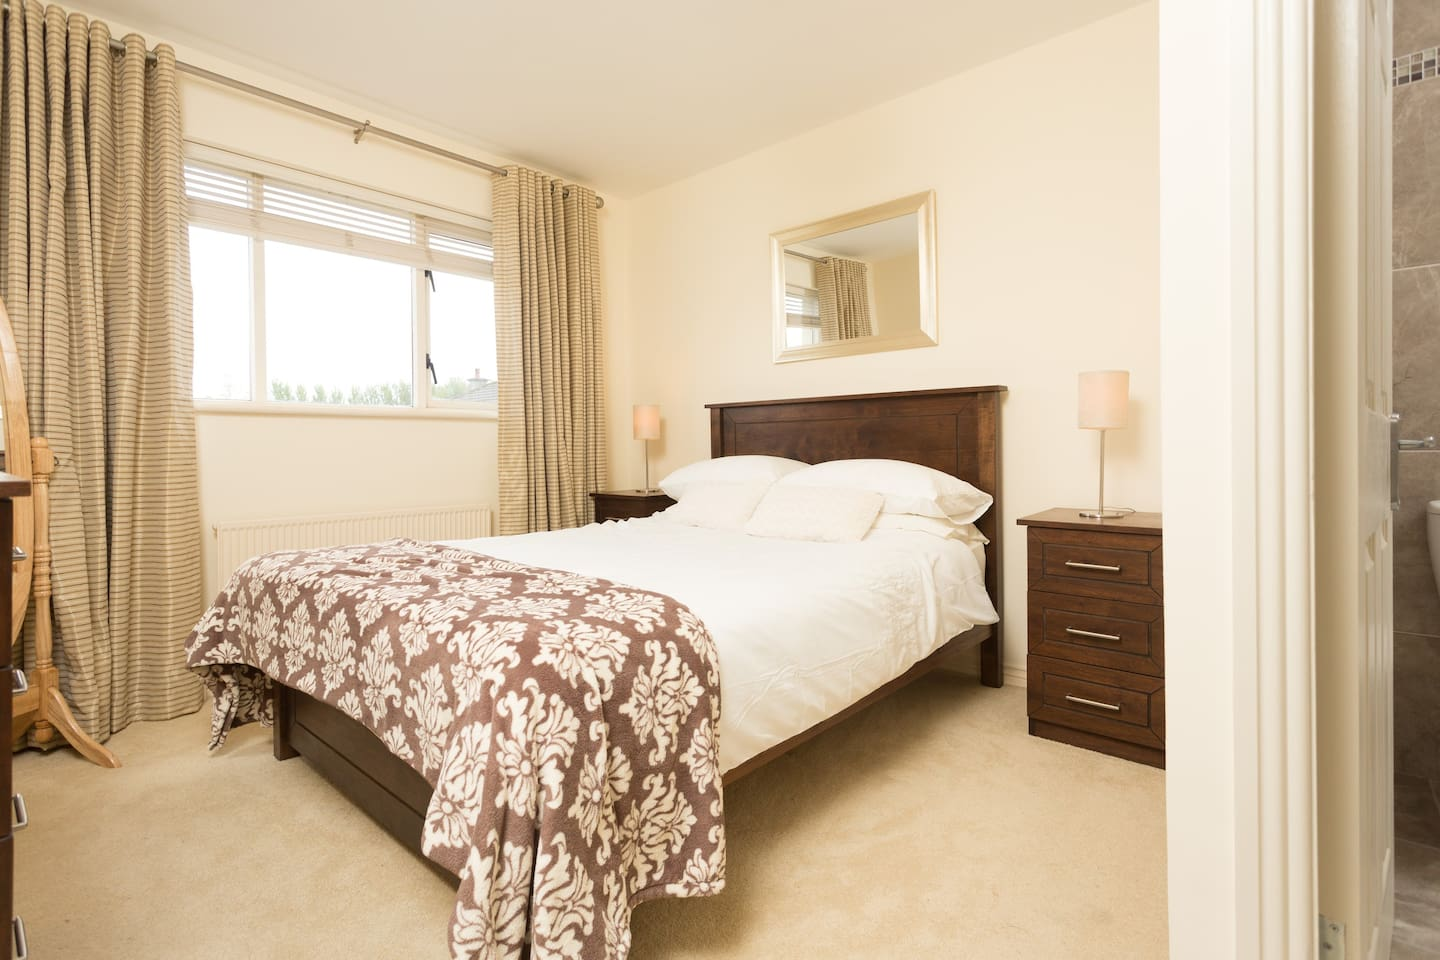 Fantastic location in Galway city!